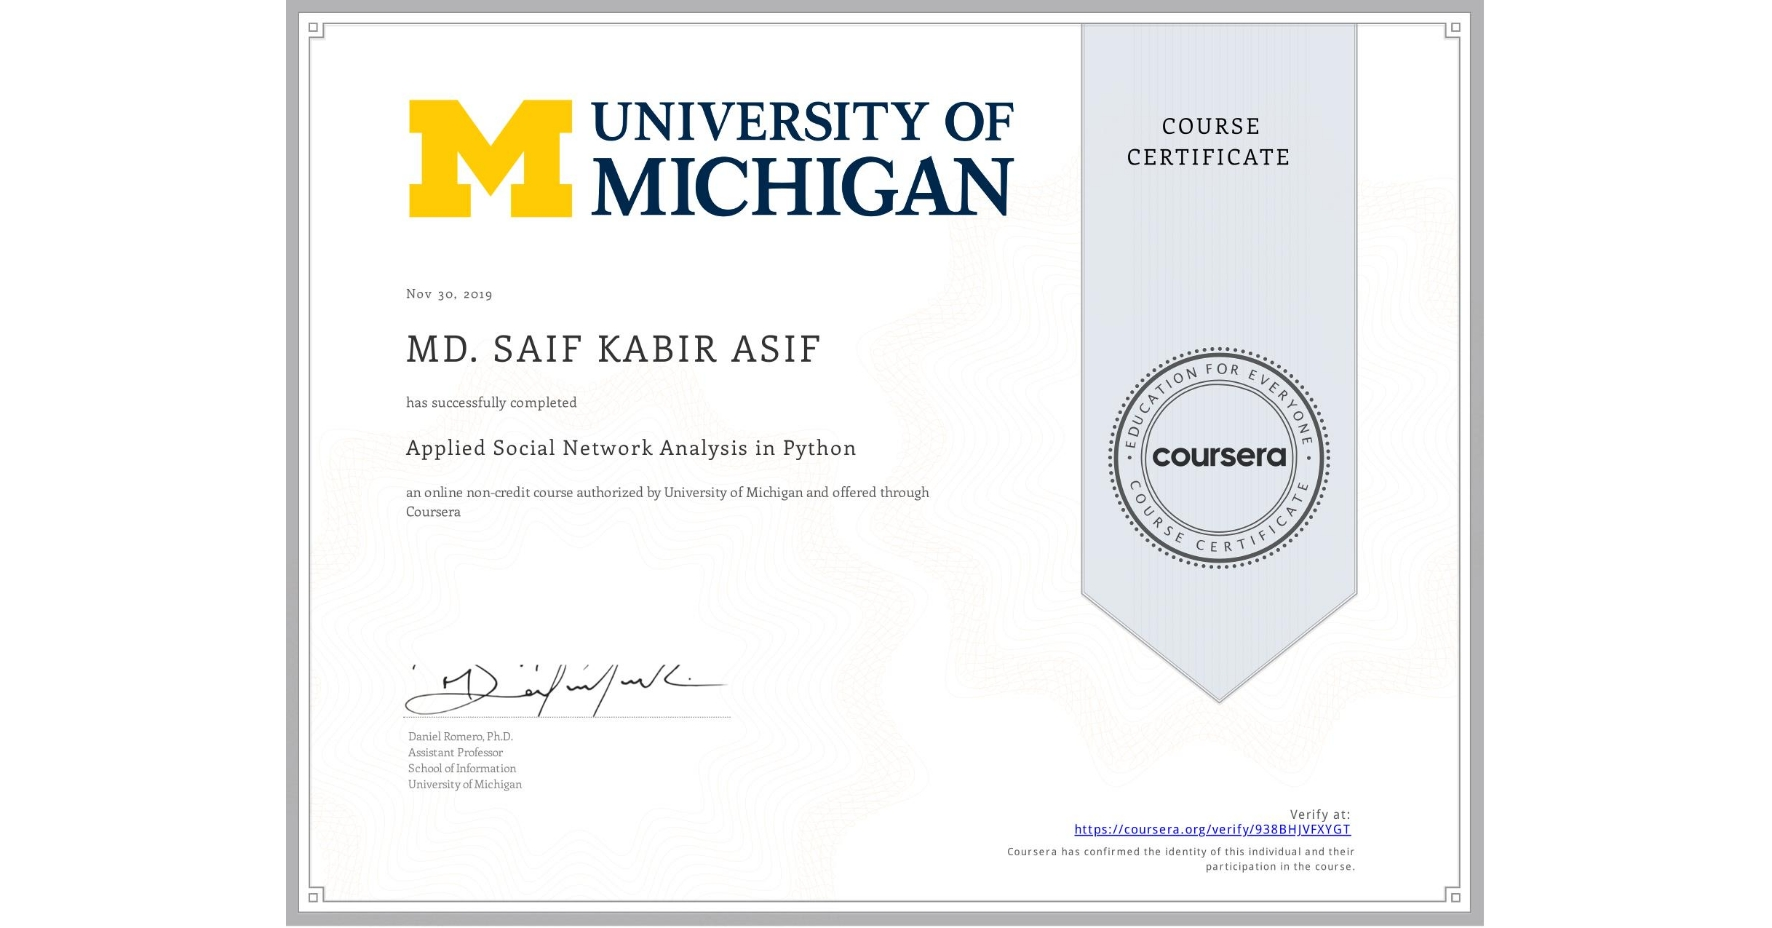 View certificate for Md. Saif Kabir  Asif, Applied Social Network Analysis in Python, an online non-credit course authorized by University of Michigan and offered through Coursera